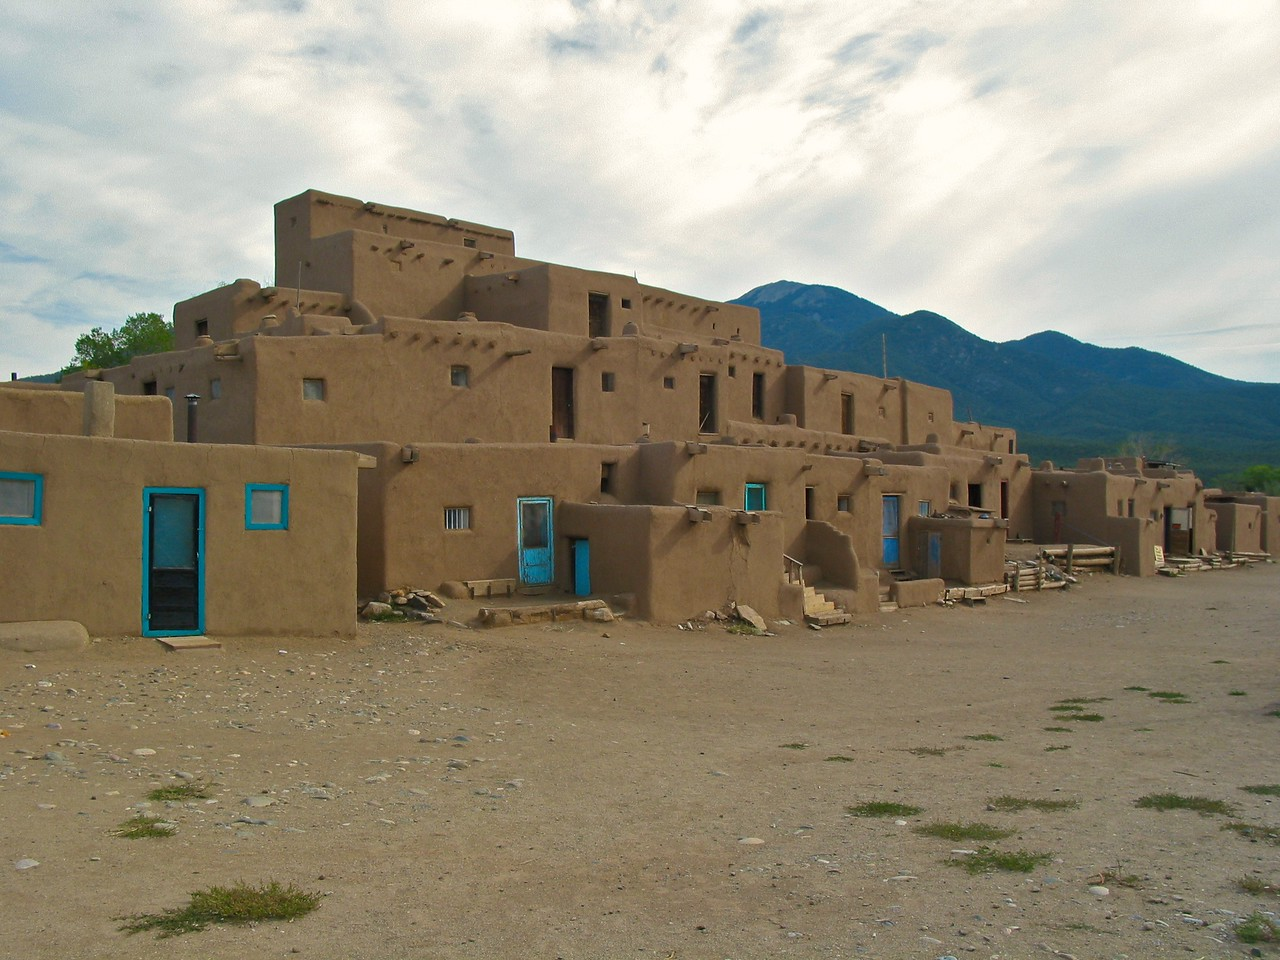 he North-Side Pueblo is said to be one of the most photographed and painted buildings in the Western Hemisphere. It is the largest multistoried Pueblo structure still existing. It is made of adobe walls that are often several feet thick. Its primary purpose was for defense. Up to as late as 1900, access to the rooms on lower floors was by ladders on the outside to the roof, and then down an inside ladder. In case of an attack, outside ladders could easily be pulled up.